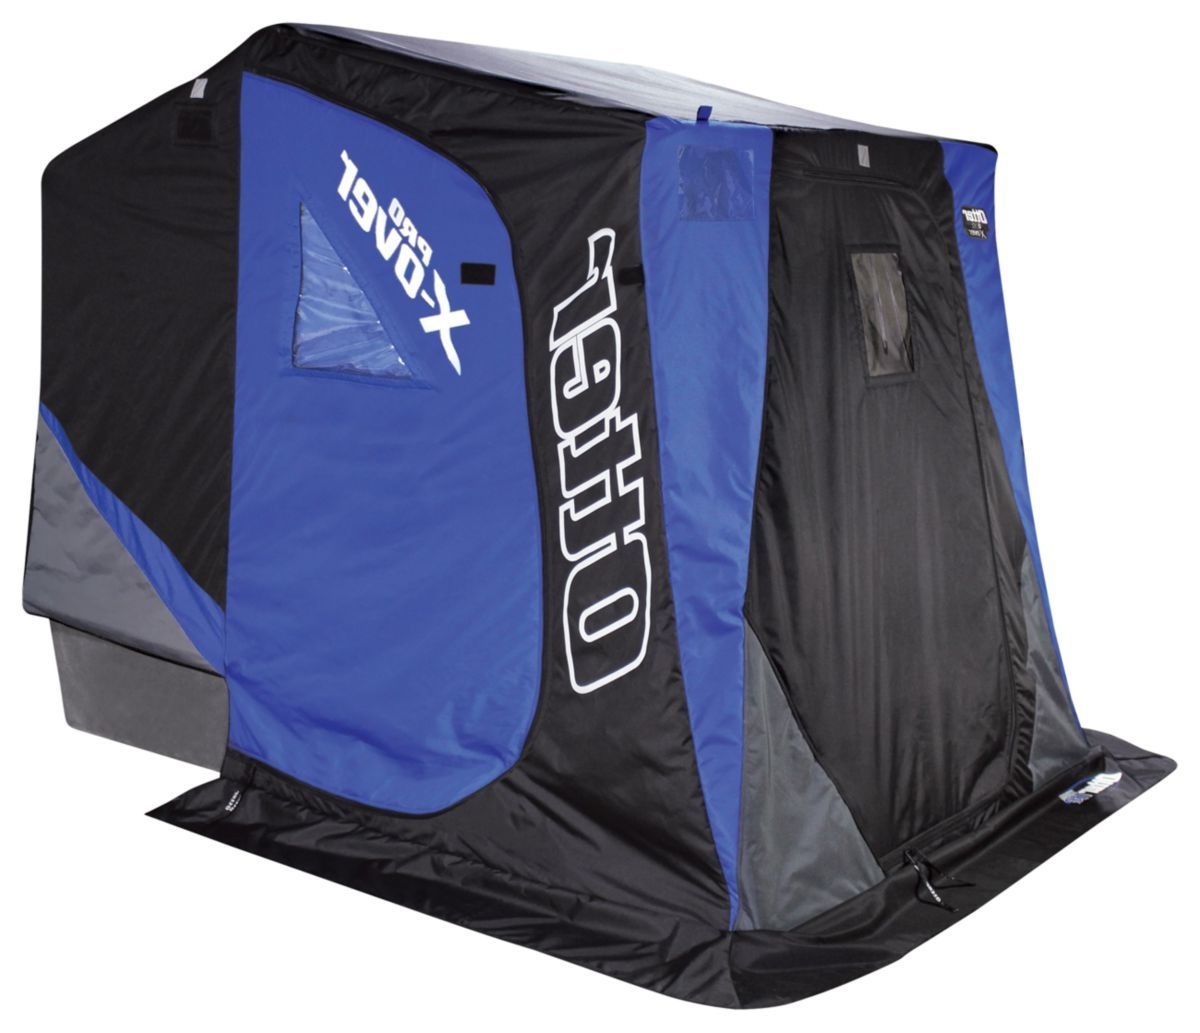 Discount Ice Fishing Gear - The Best 12 Shelters & Sleds – OutdoorMiks